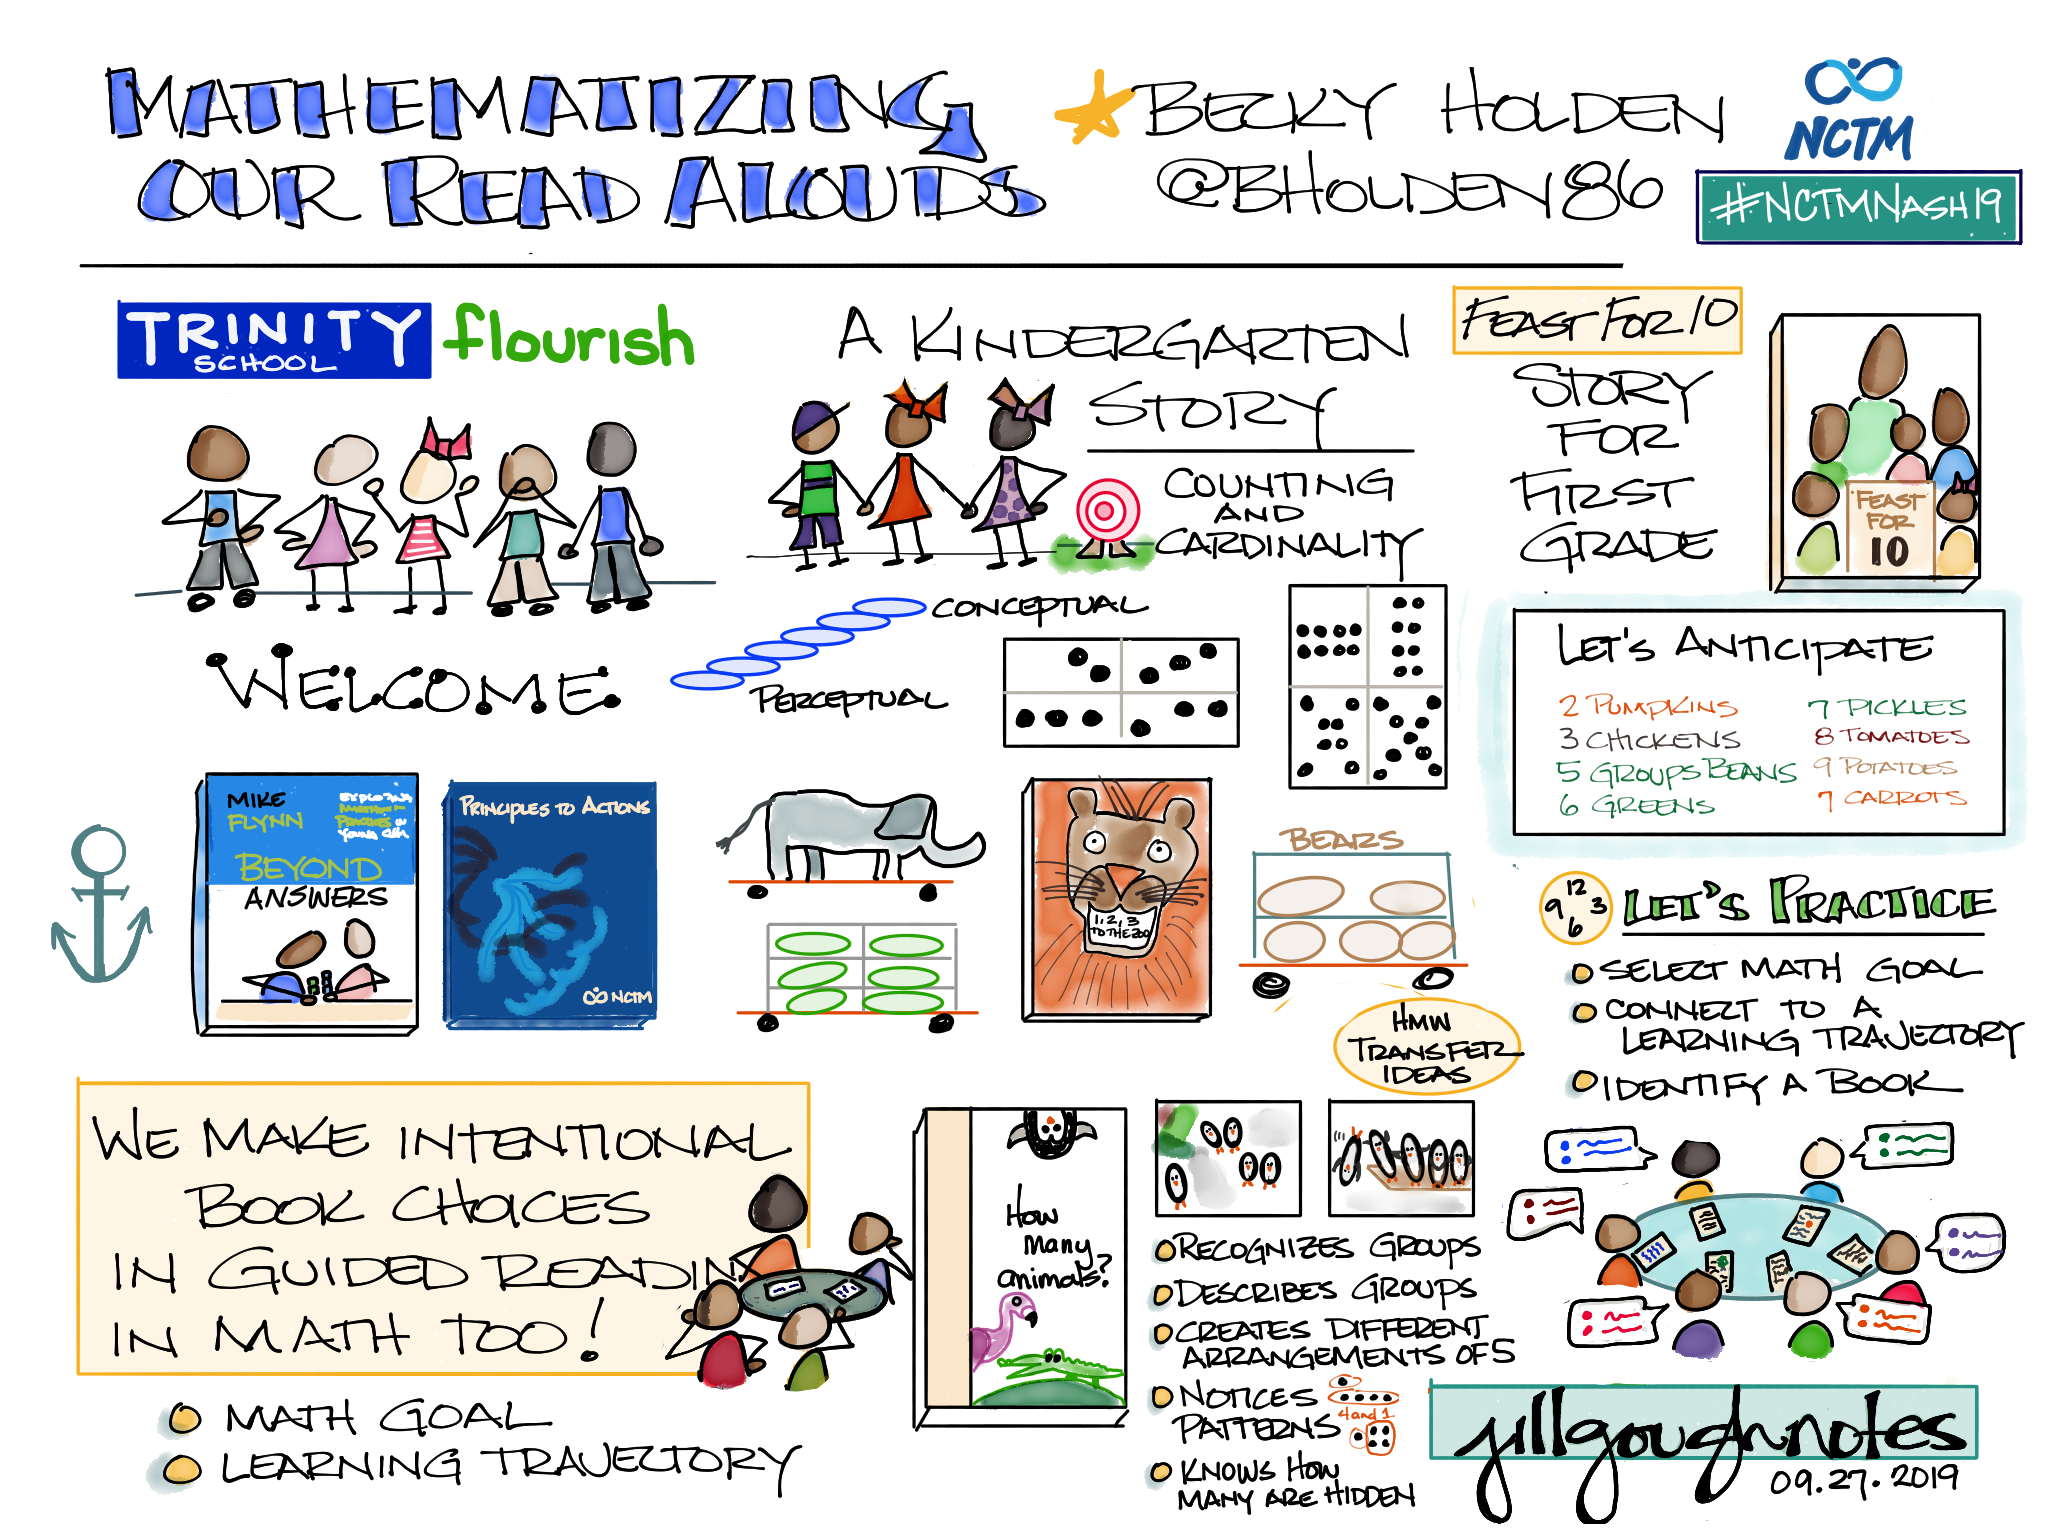 Sharing my #sketchnotes from #TrinityLearns @BHolden86 Mathematizing our Read Alouds #NCTMNash19